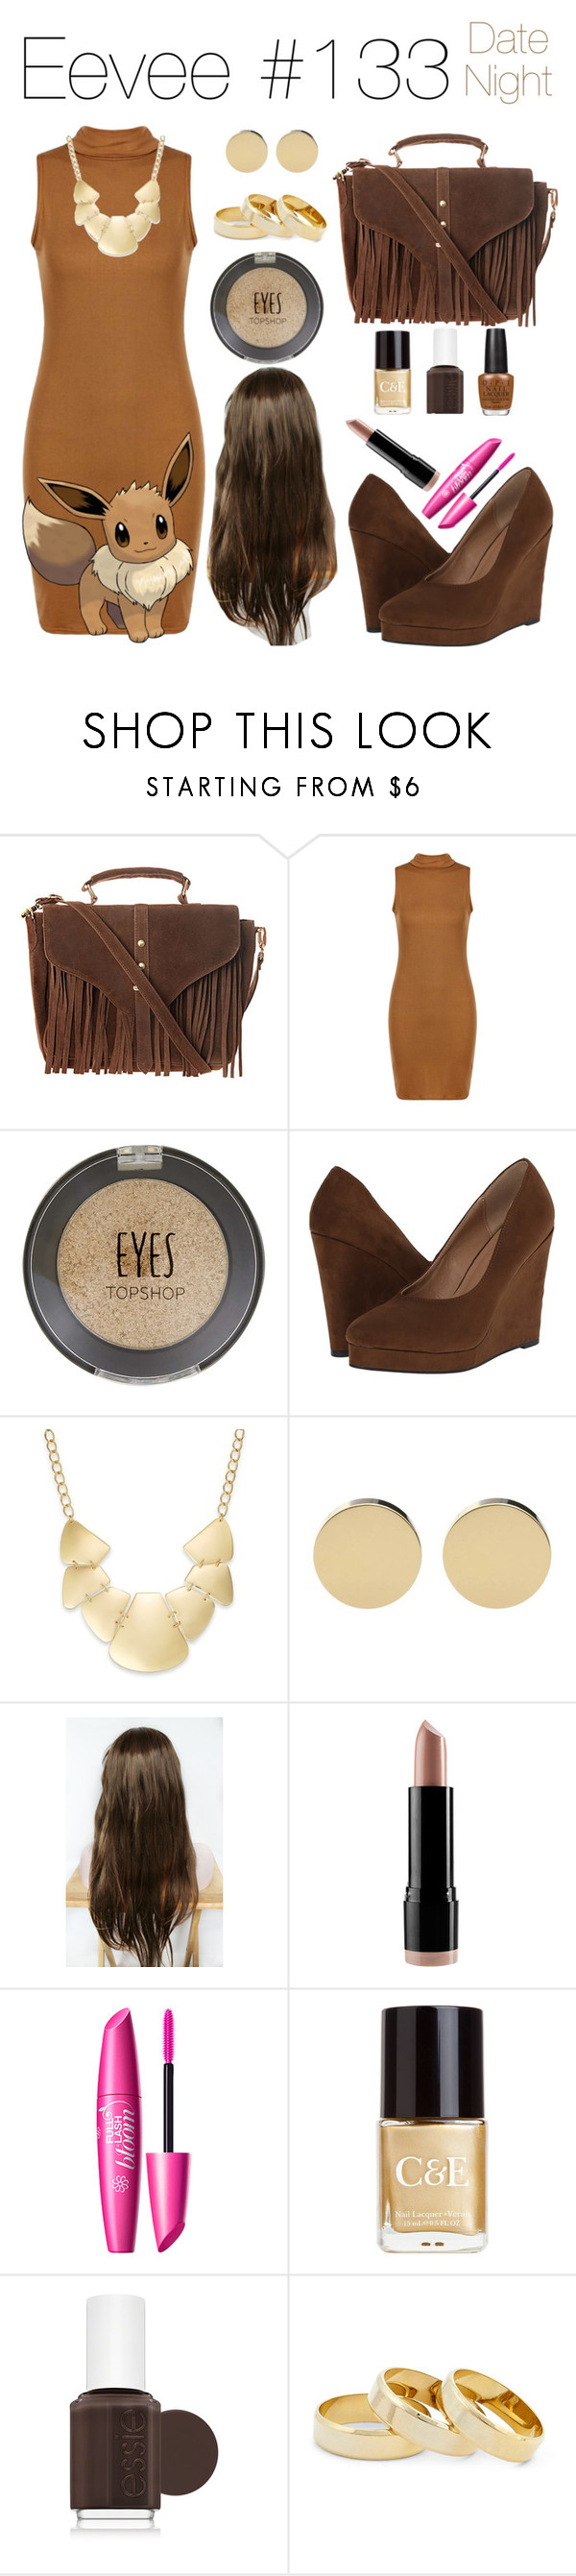 """""""Eevee: Date Night"""" by southwestsweetheart ❤ liked on Polyvore featuring Topshop, Michael Antonio, Bar III, NYX, Crabtree & Evelyn, Essie, OPI and Sole Society"""